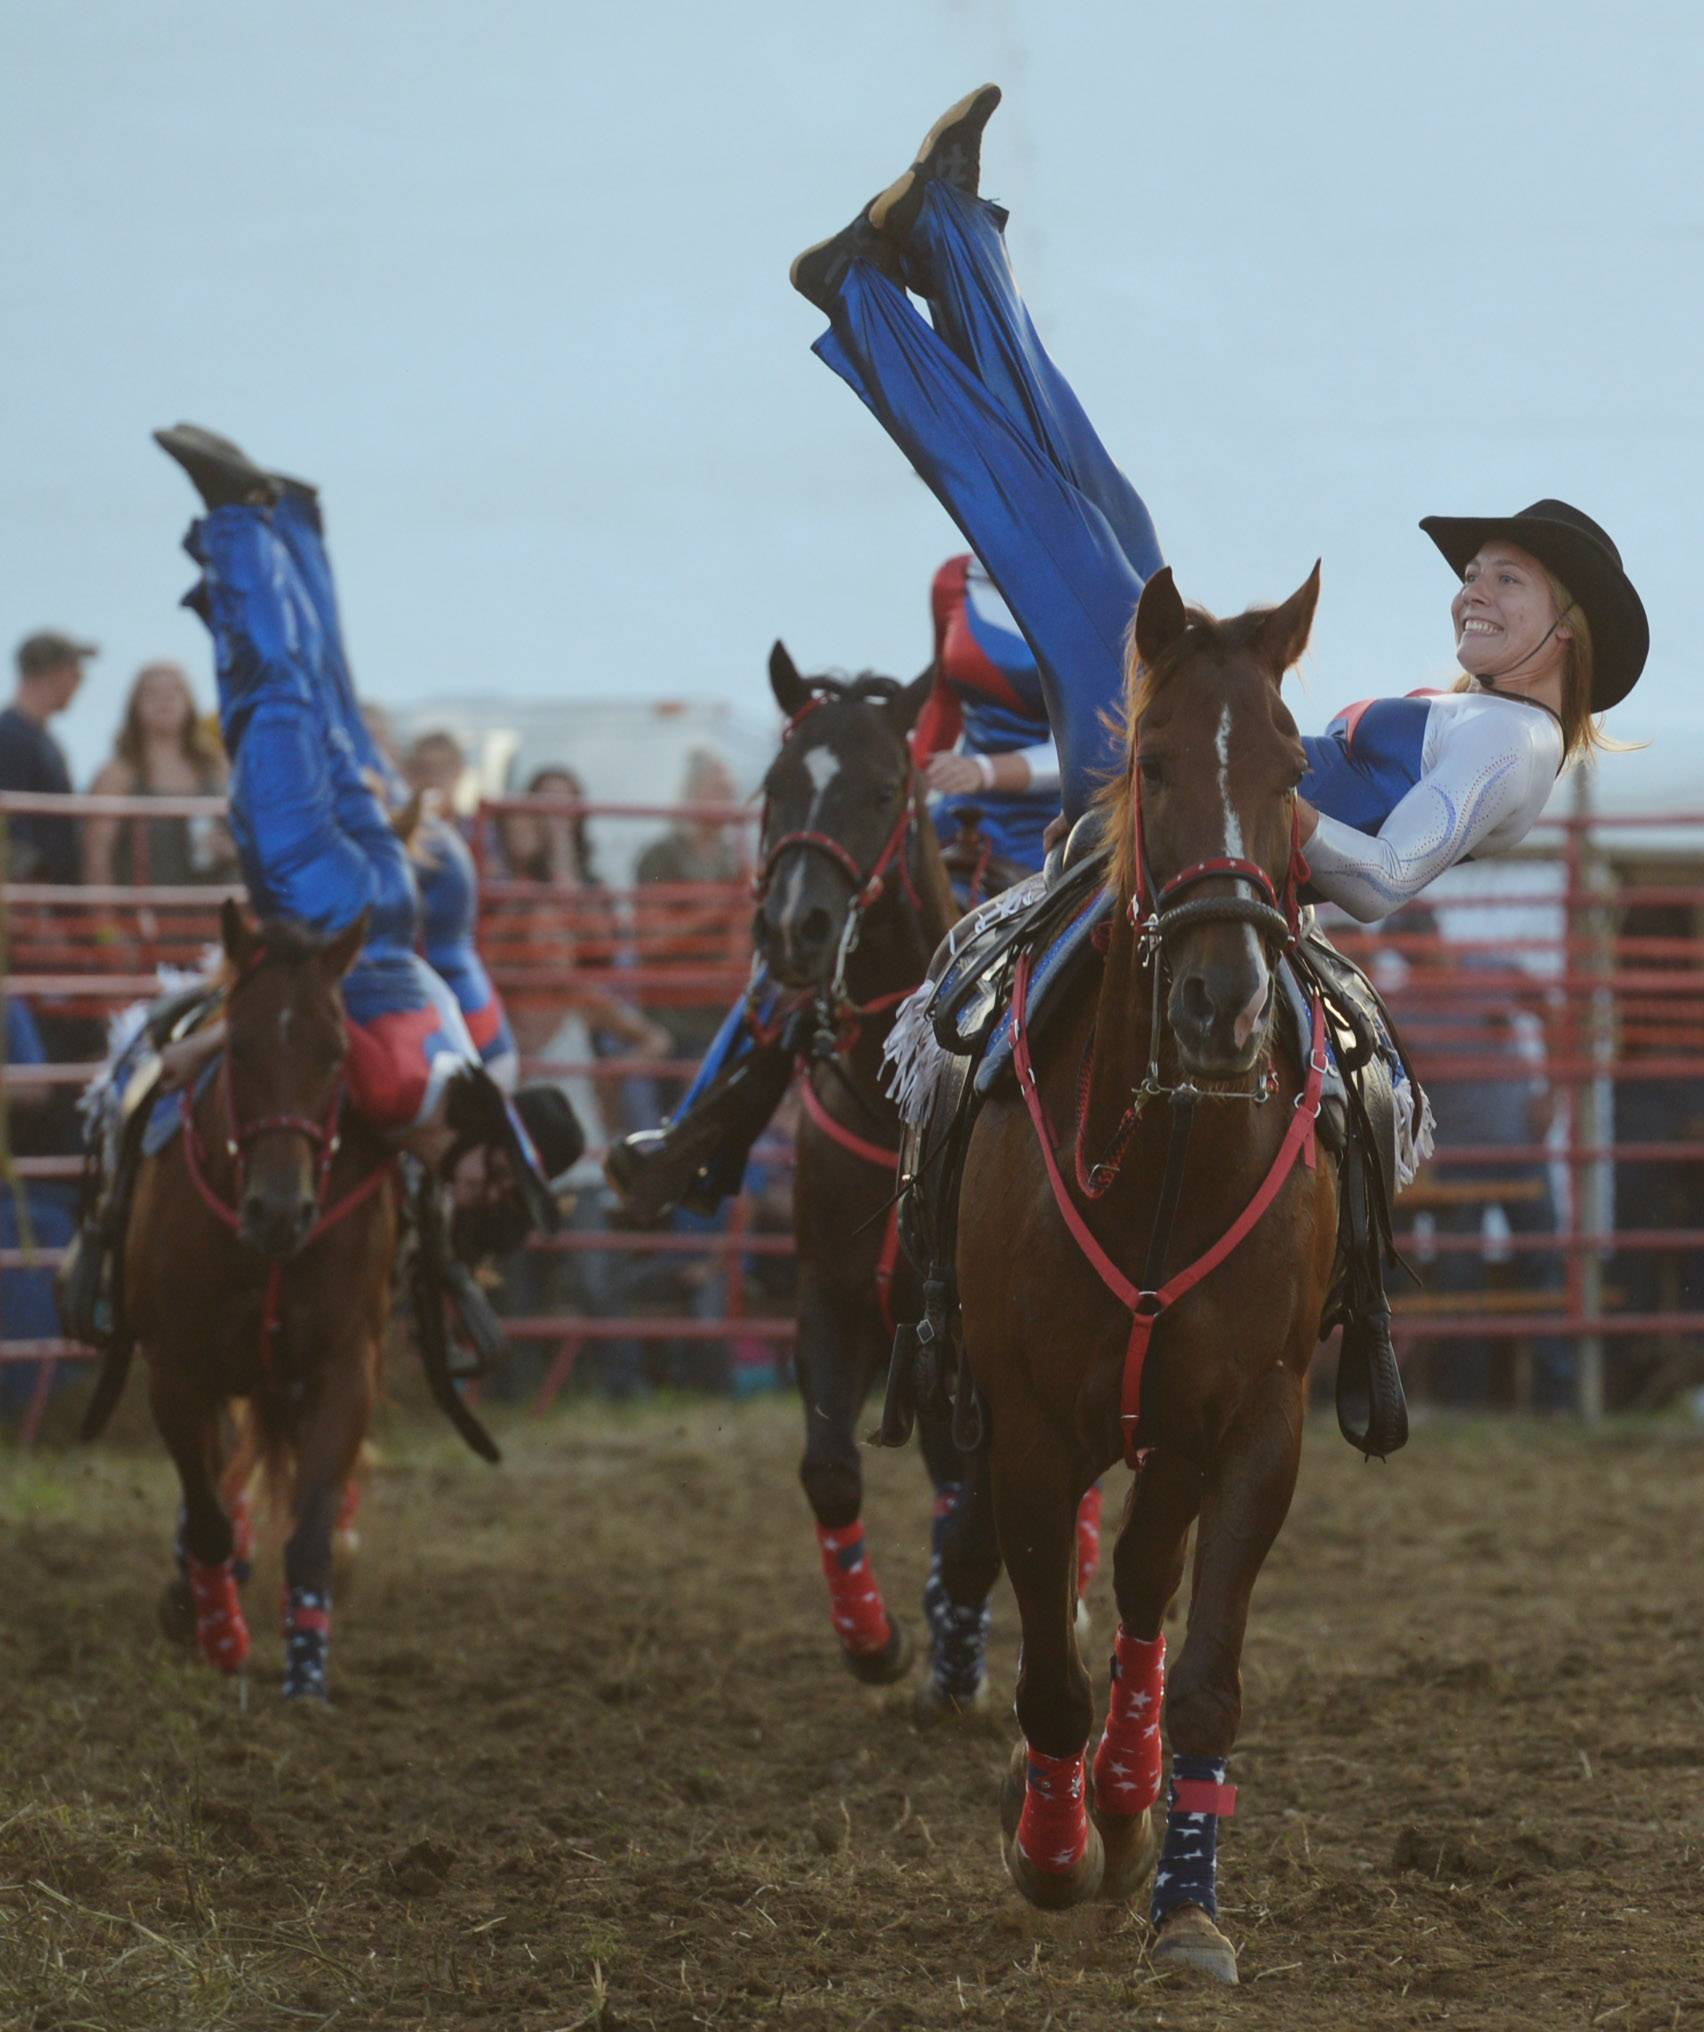 Larissa Pietrzak of the MidWest Renegades Drill Team performs during the 54th annual IPRA Championship rodeo Saturday in Wauconda.